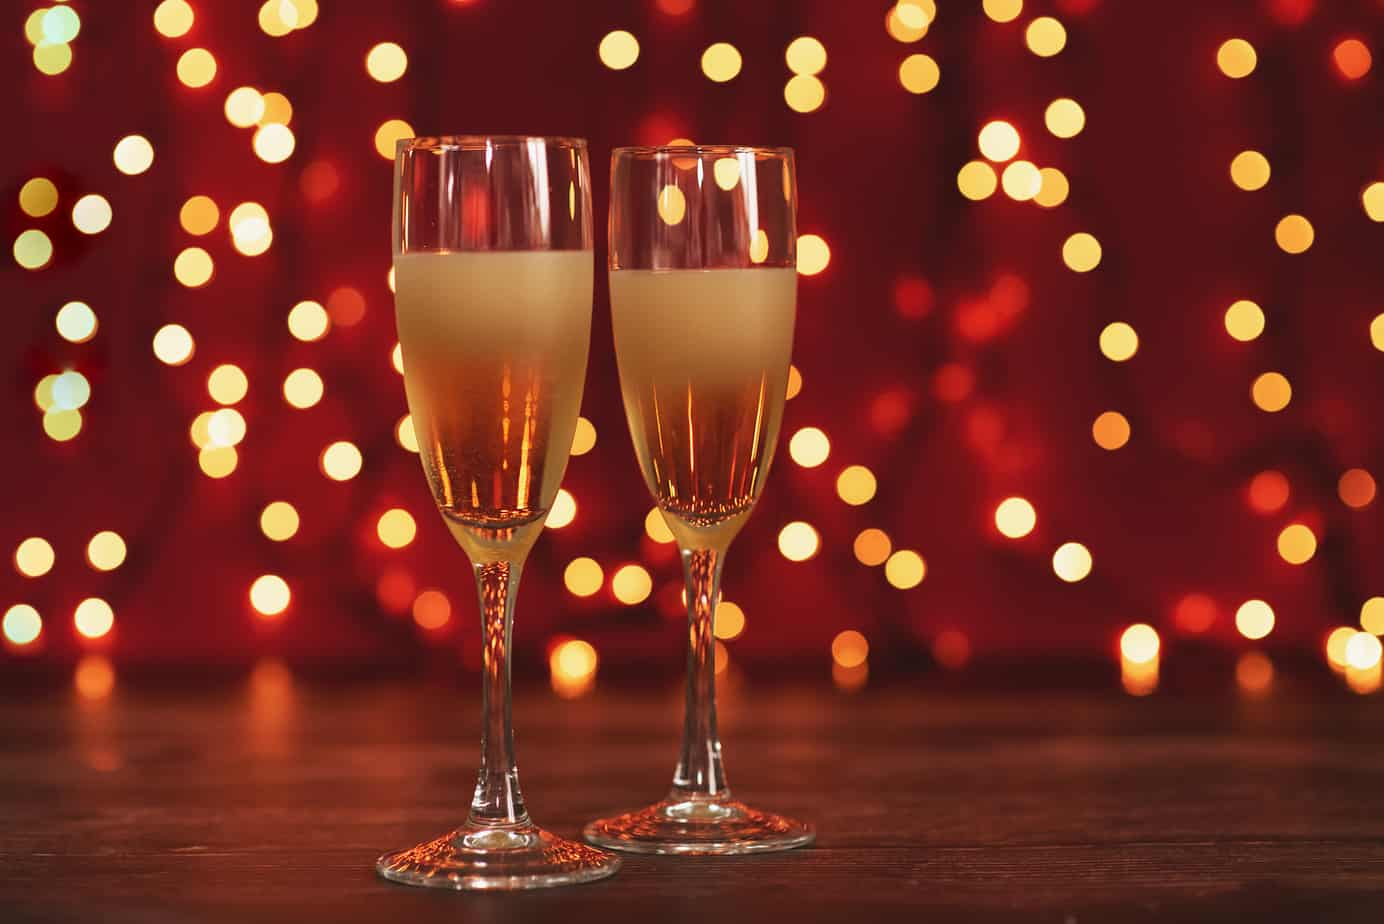 new year's eve date ideas header image - two champagne glasses side by side in front of red background with white lights